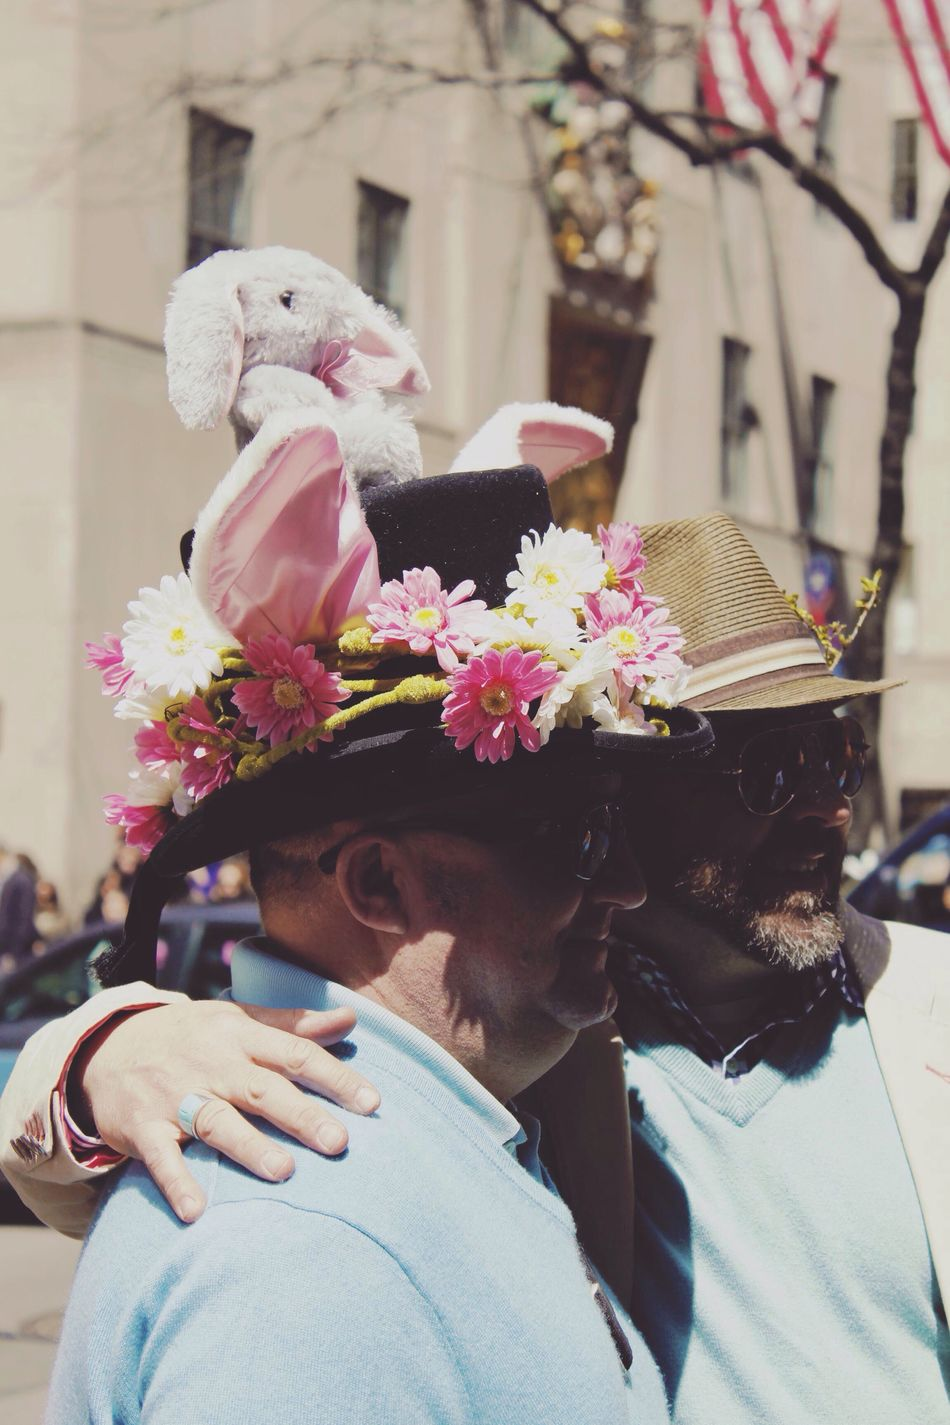 Easter Ready Crazy Hats Easter Sunday Easter NYC Nyc Easter Parade Parade Easter Parade Easter Pictures Outfit Rabbit Flowers Bunny 🐰